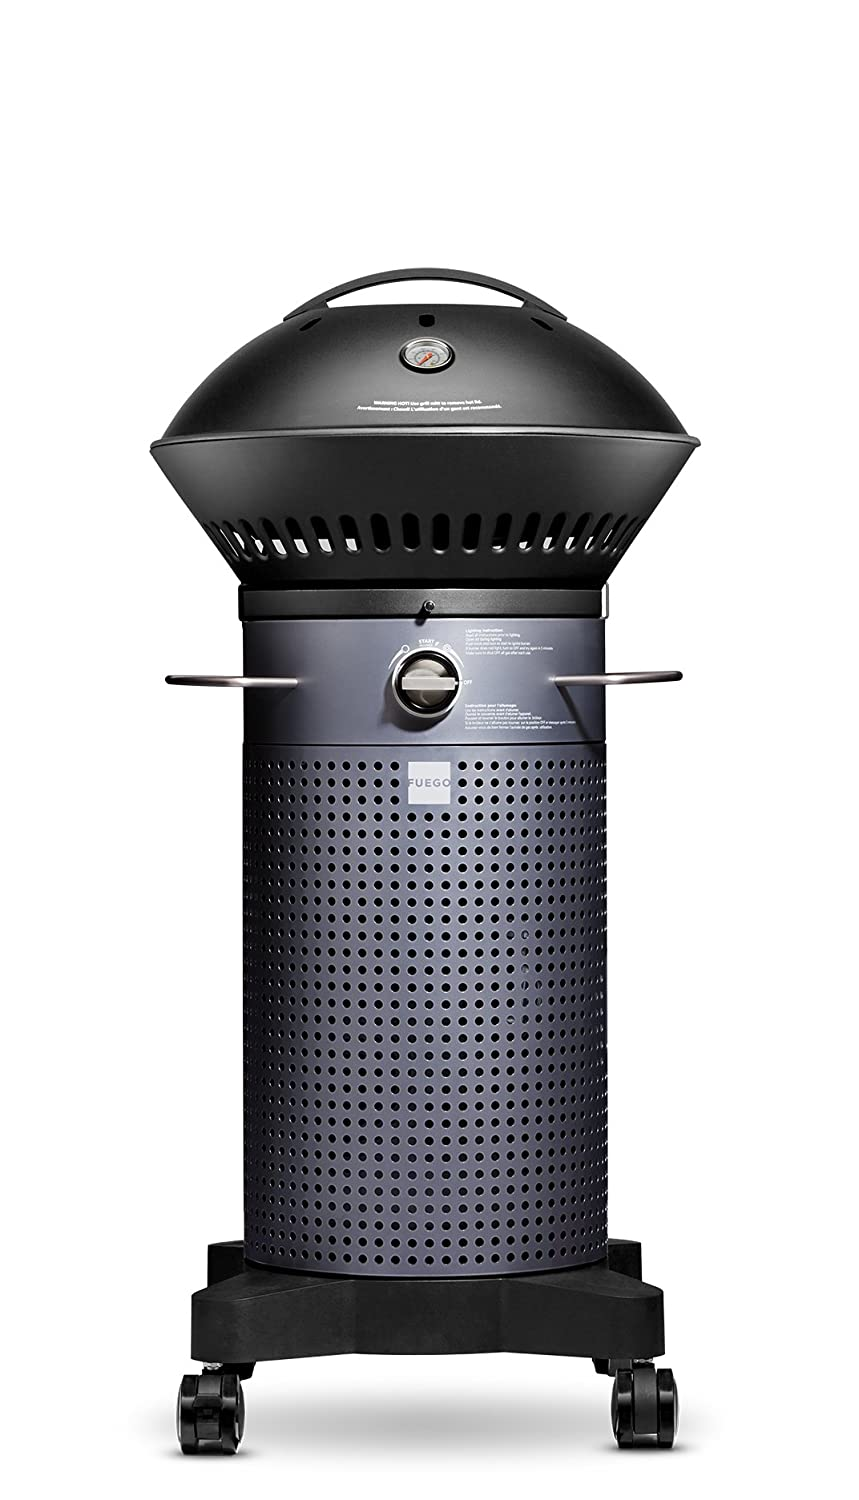 FUEGO FELG21C Element Gas Grill Carbon Steel - A High-End Gas Grill Under 300